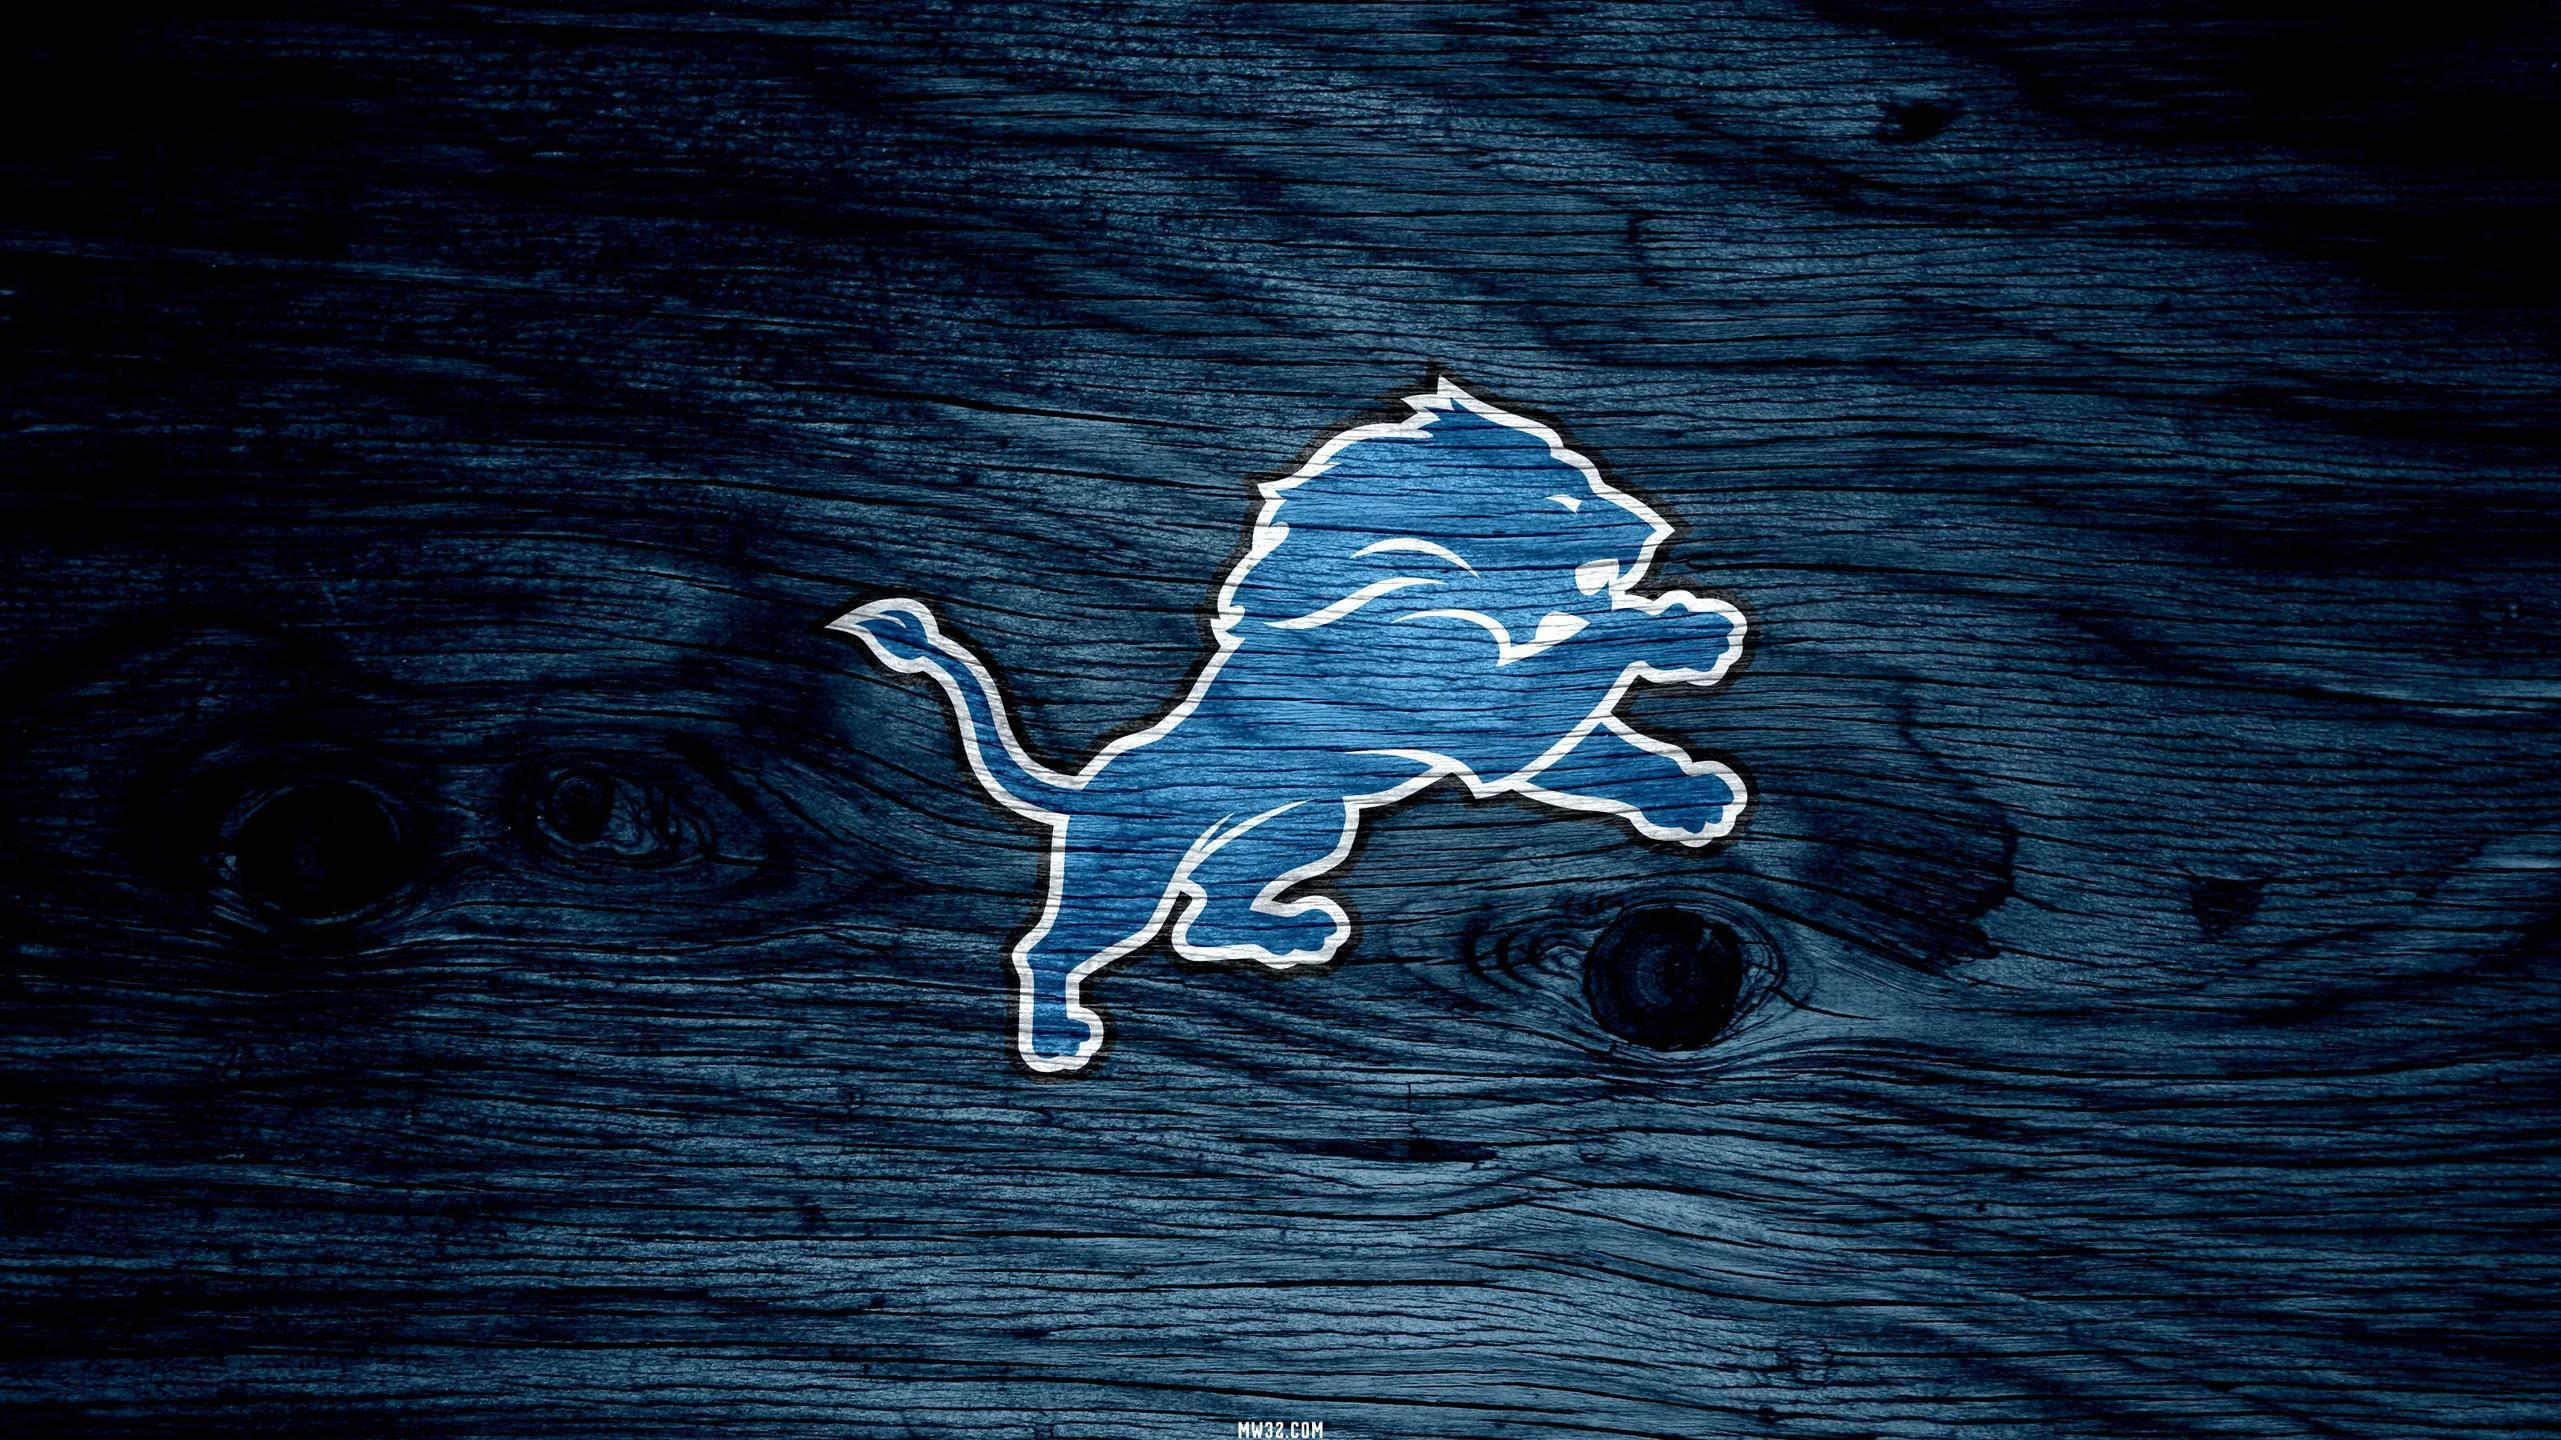 detroit lions Full HD Wallpapers and Backgrounds